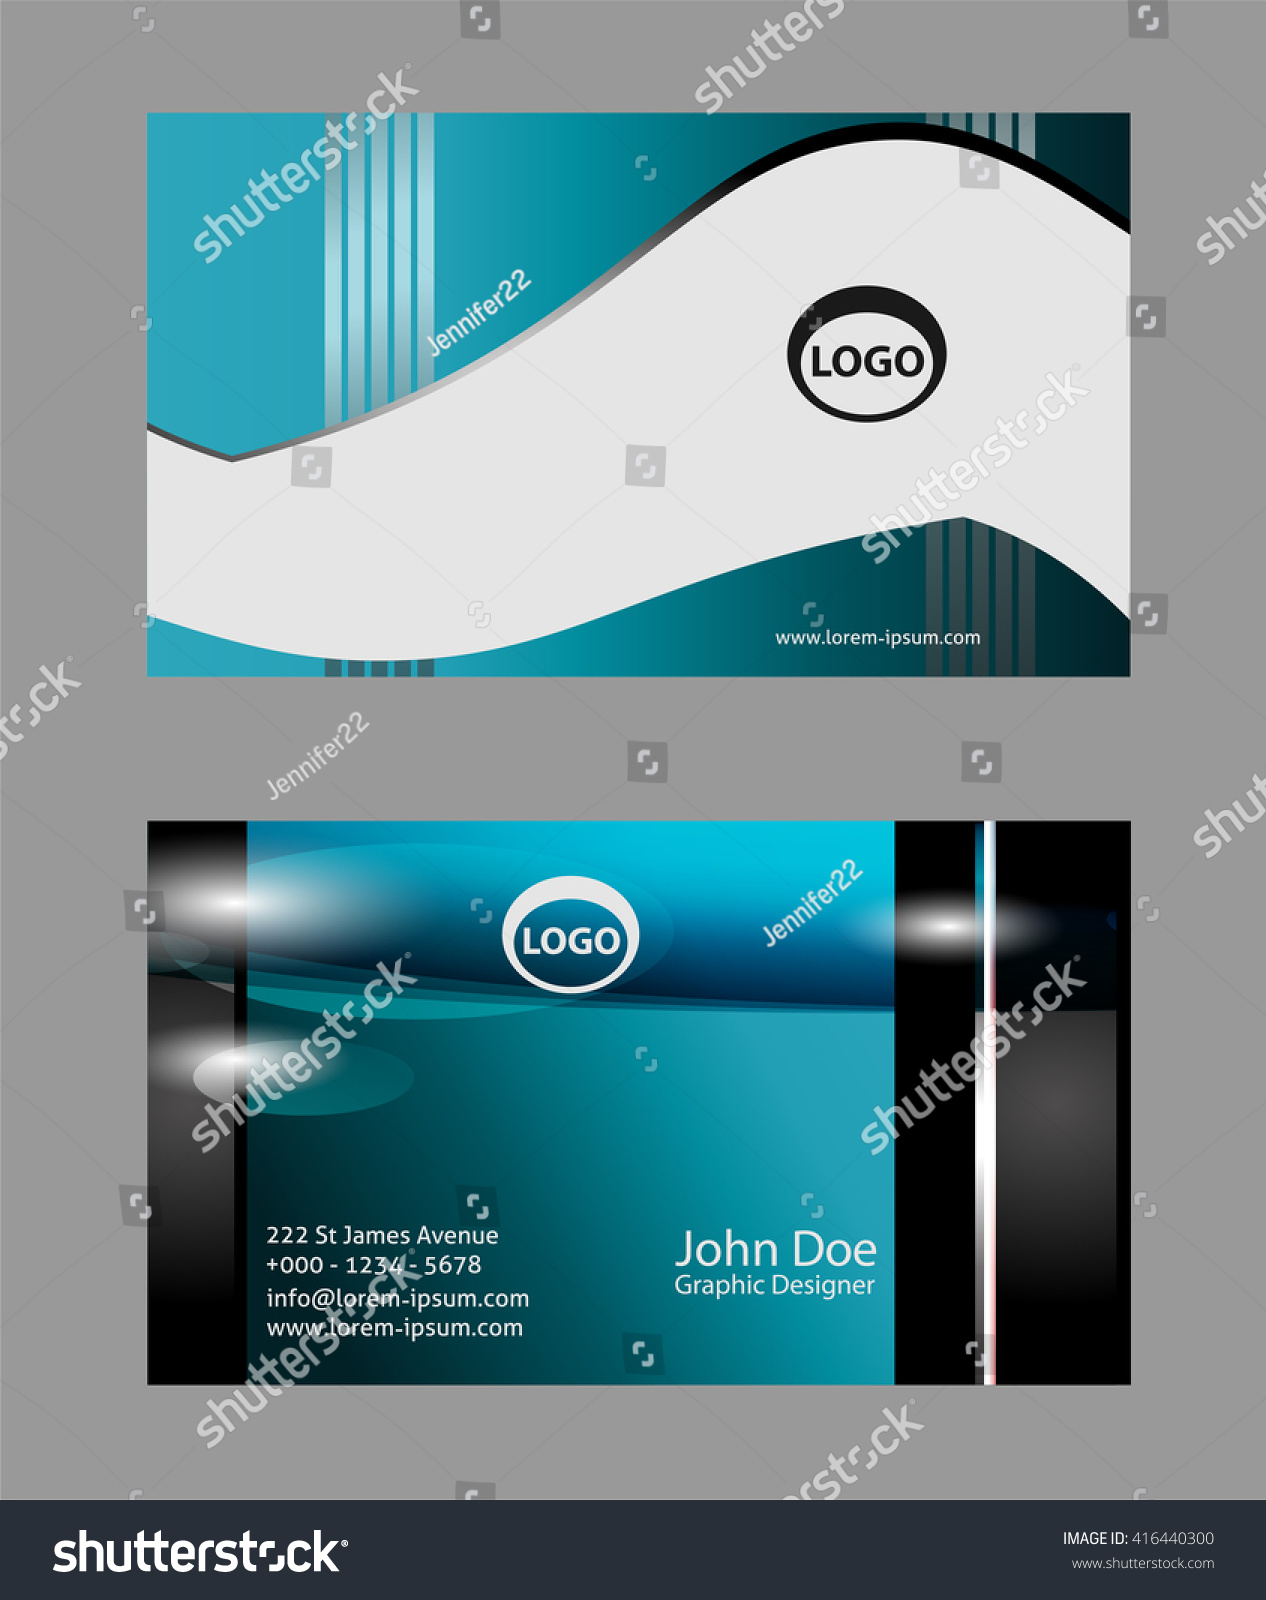 business card template vector design editable stock vector